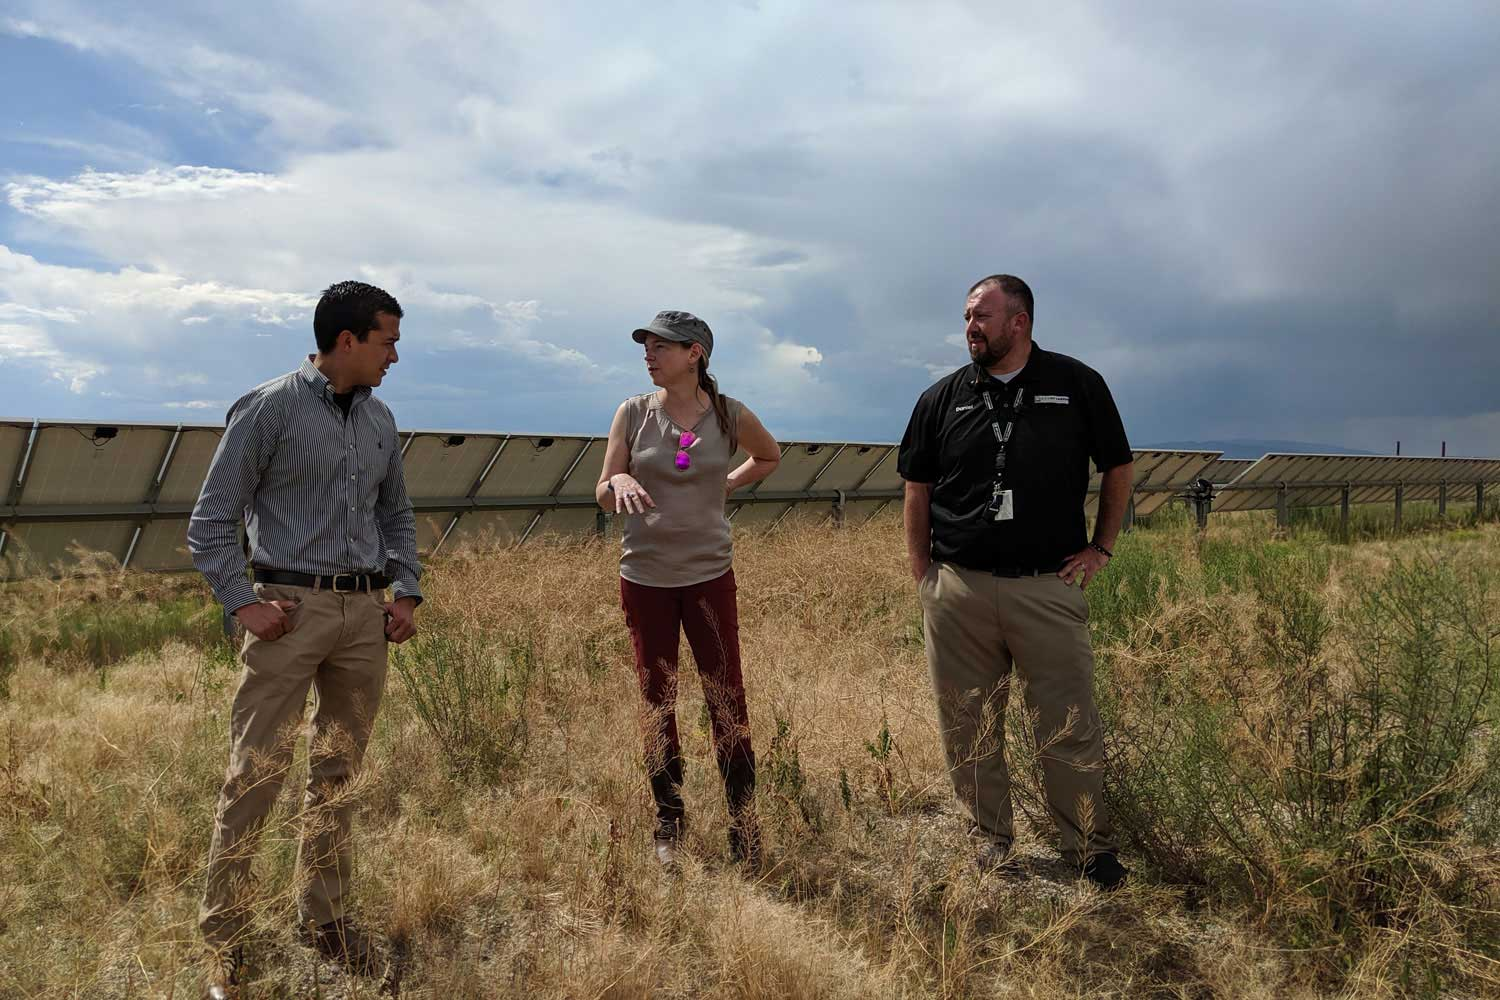 astrid from camus in a solar field with utility representatives